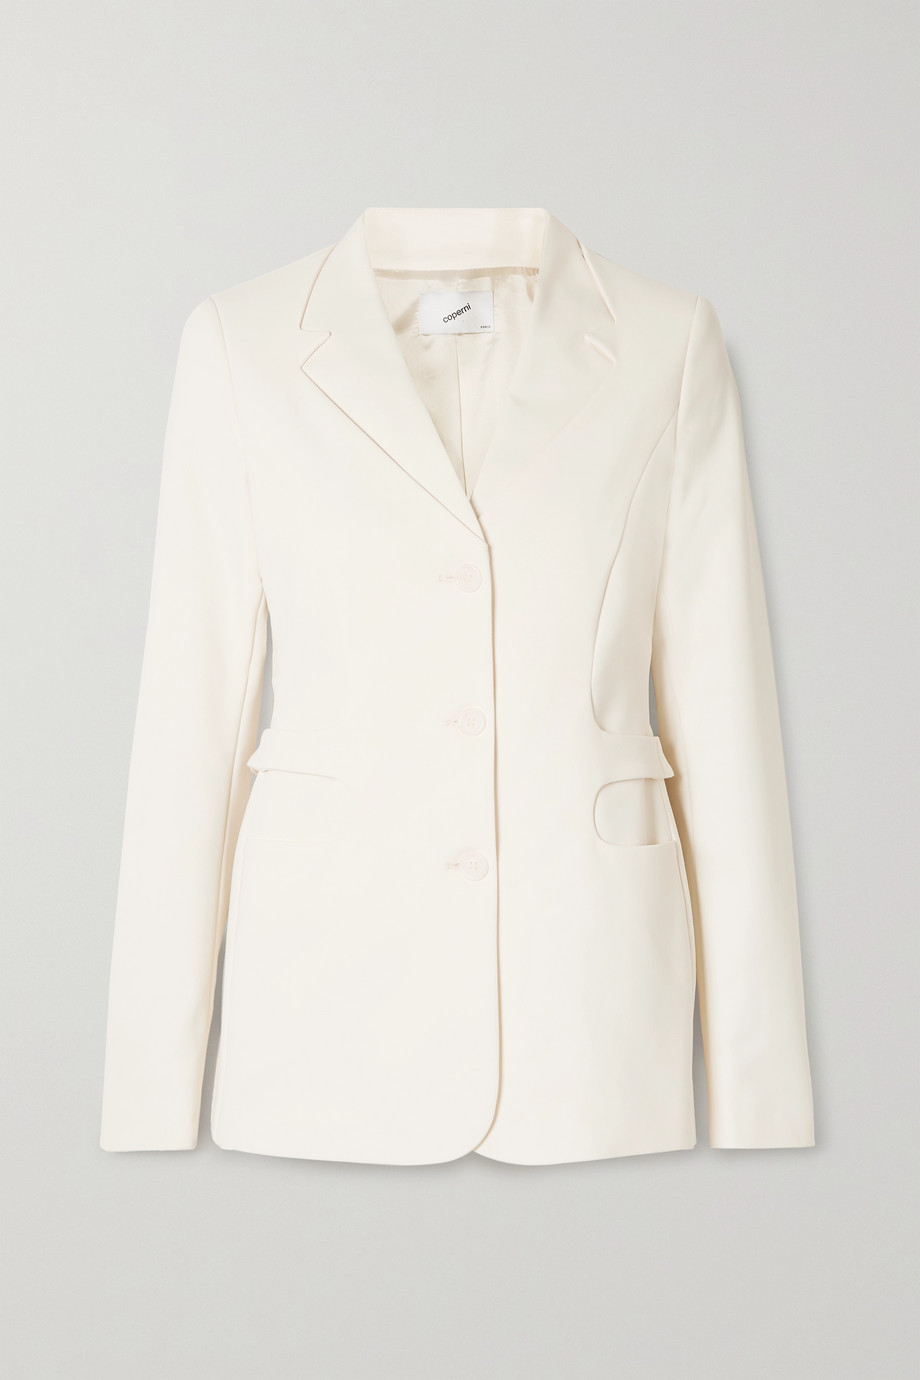 Coperni Trompe L'Oeil stretch cotton-blend blazer